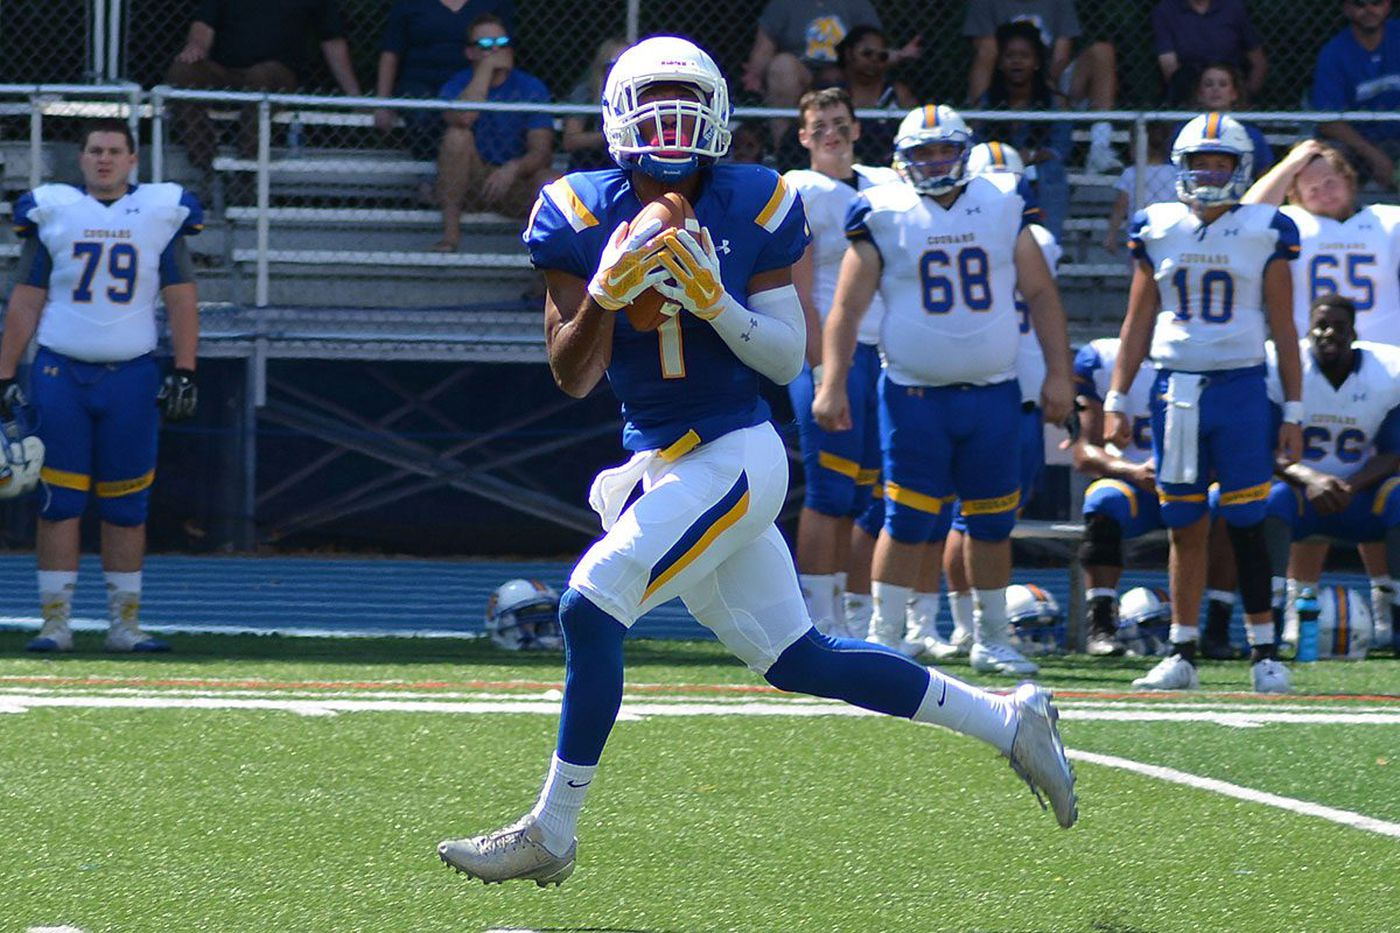 Widener's Montrell Hicks-Taylor puts safety first